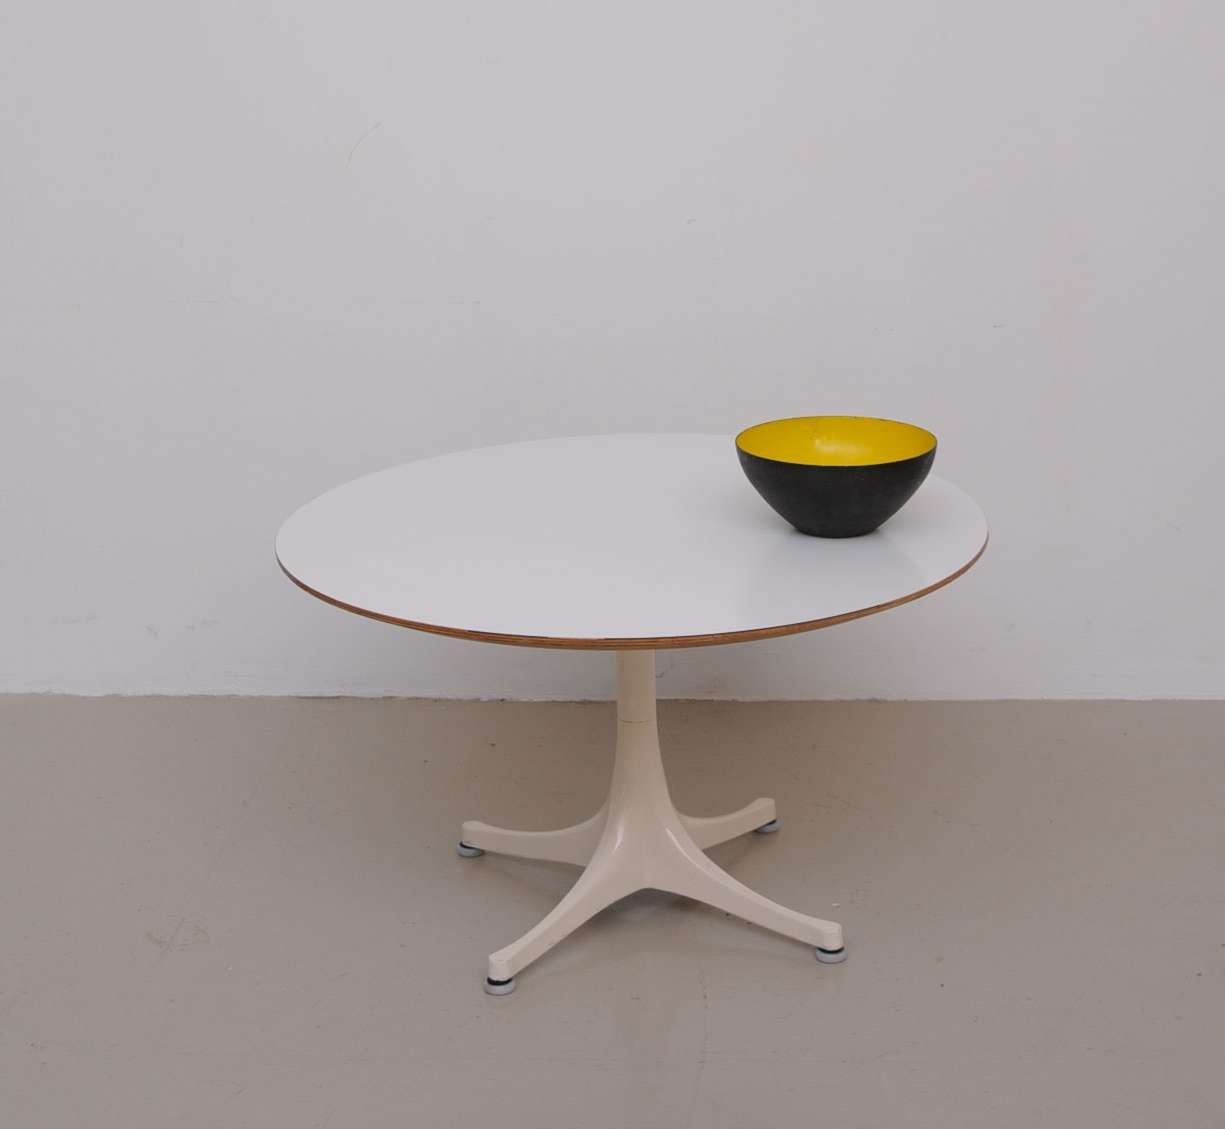 Well Known Nelson Coffee Tables Within Vintage Coffee Tablegeorge Nelson For Vitra For Sale At Pamono (View 20 of 20)